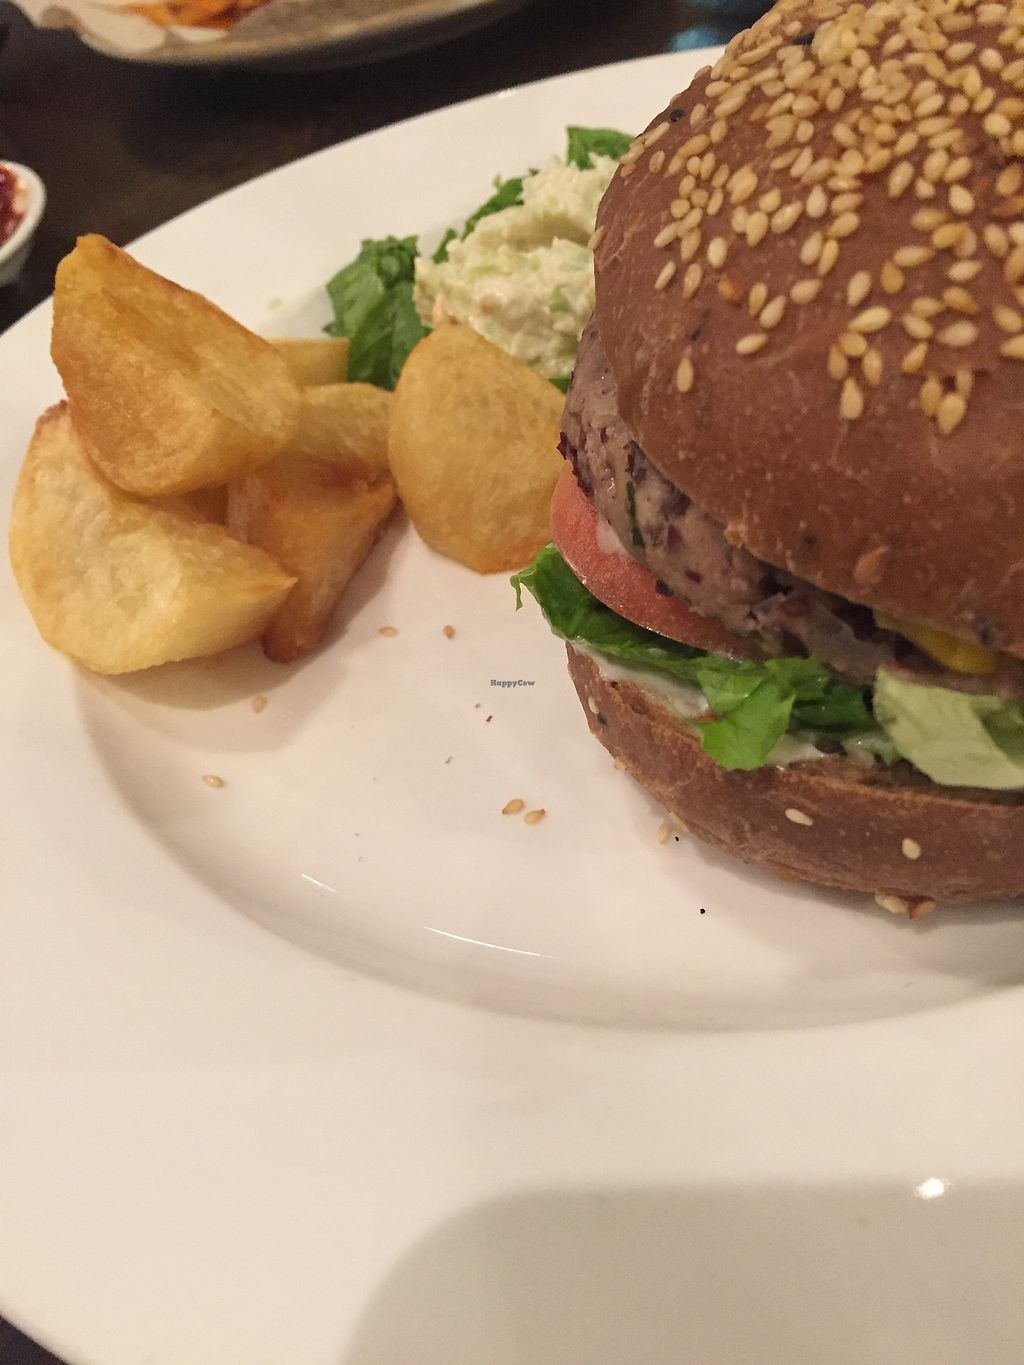 """Photo of CLOSED: The Veggie Table  by <a href=""""/members/profile/H2OAddict"""">H2OAddict</a> <br/>Southwest Bean Burger <br/> August 20, 2017  - <a href='/contact/abuse/image/26742/294607'>Report</a>"""